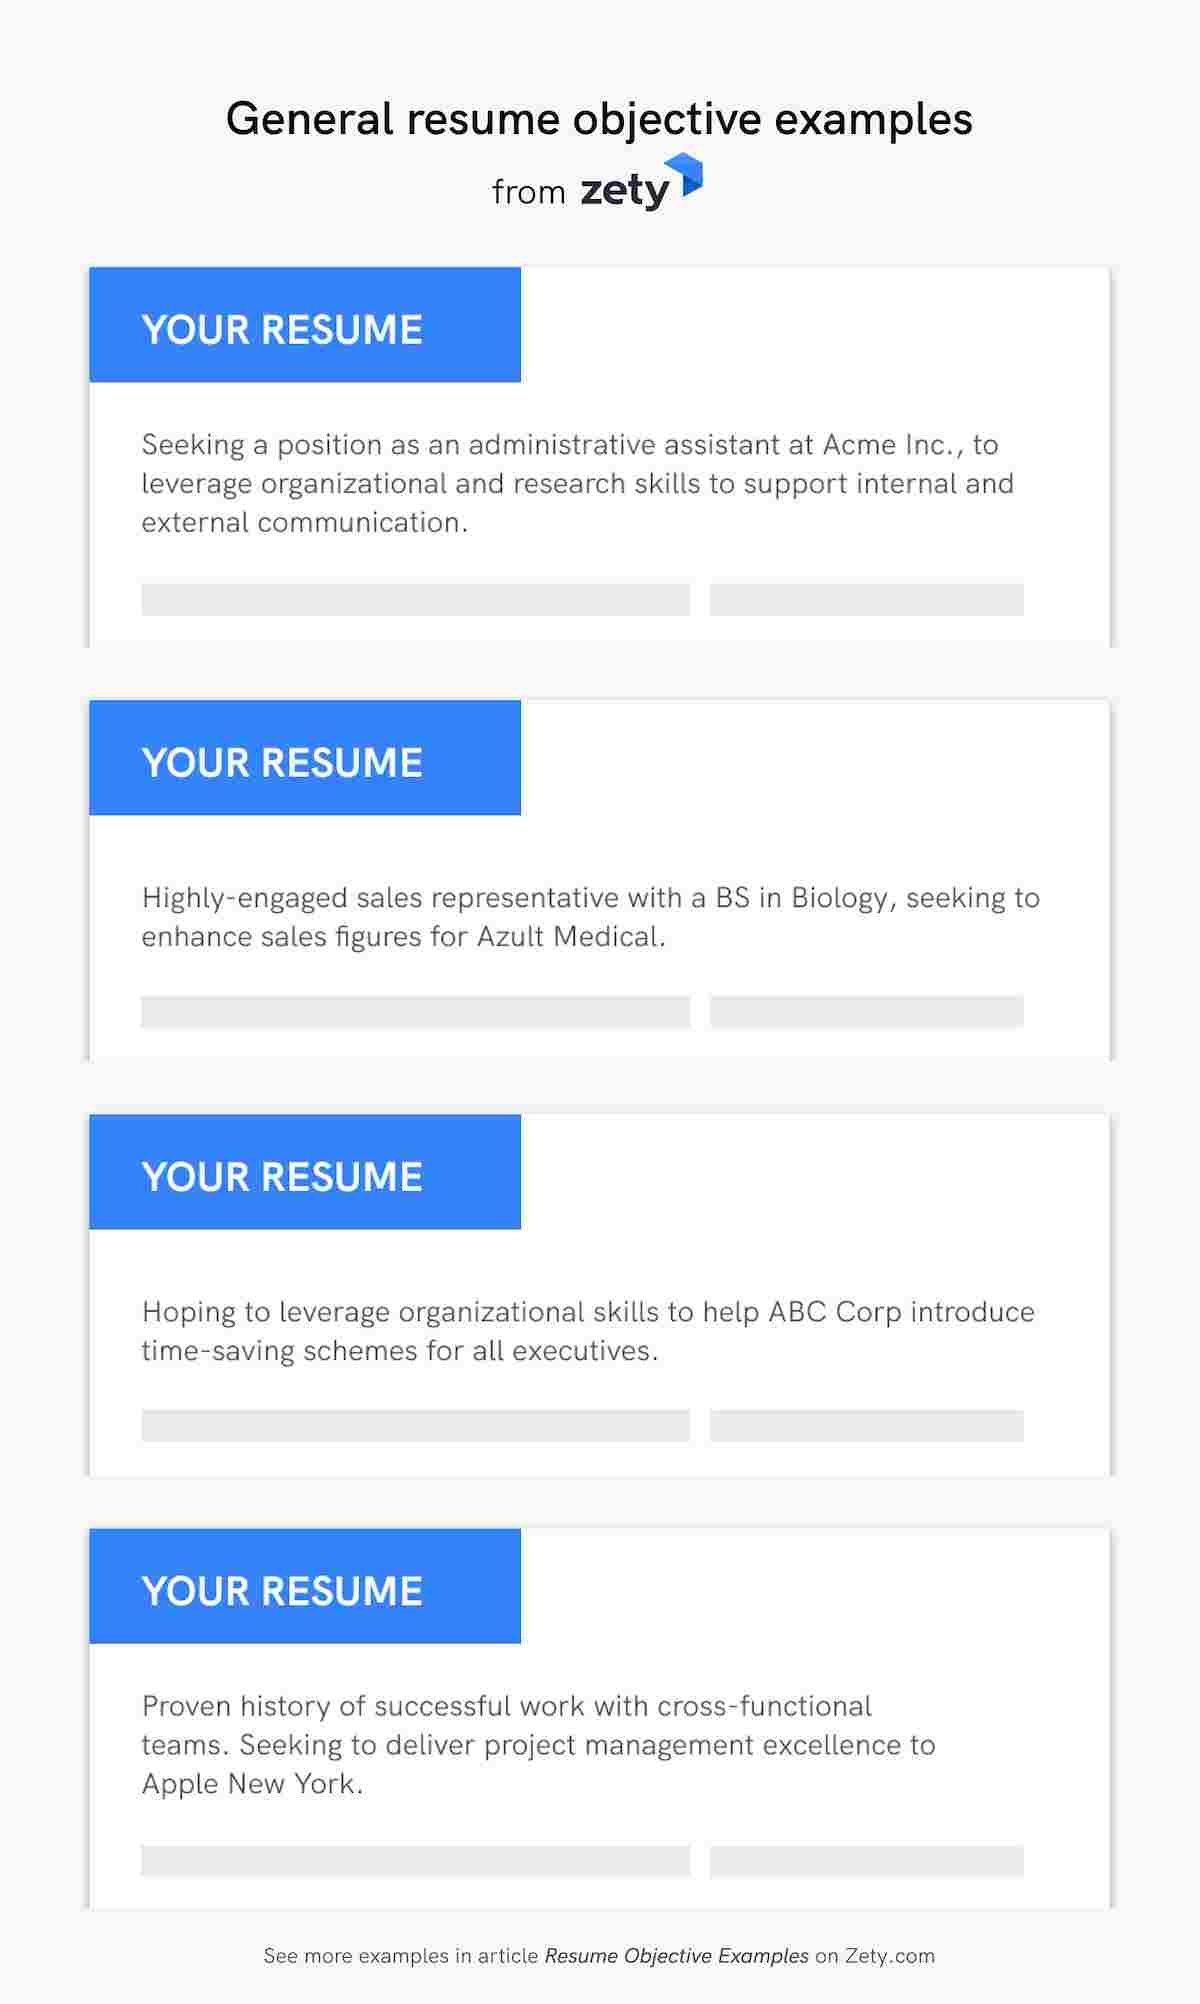 resume objective examples career objectives for all jobs good first job general Resume Good Objective For Resume For First Job